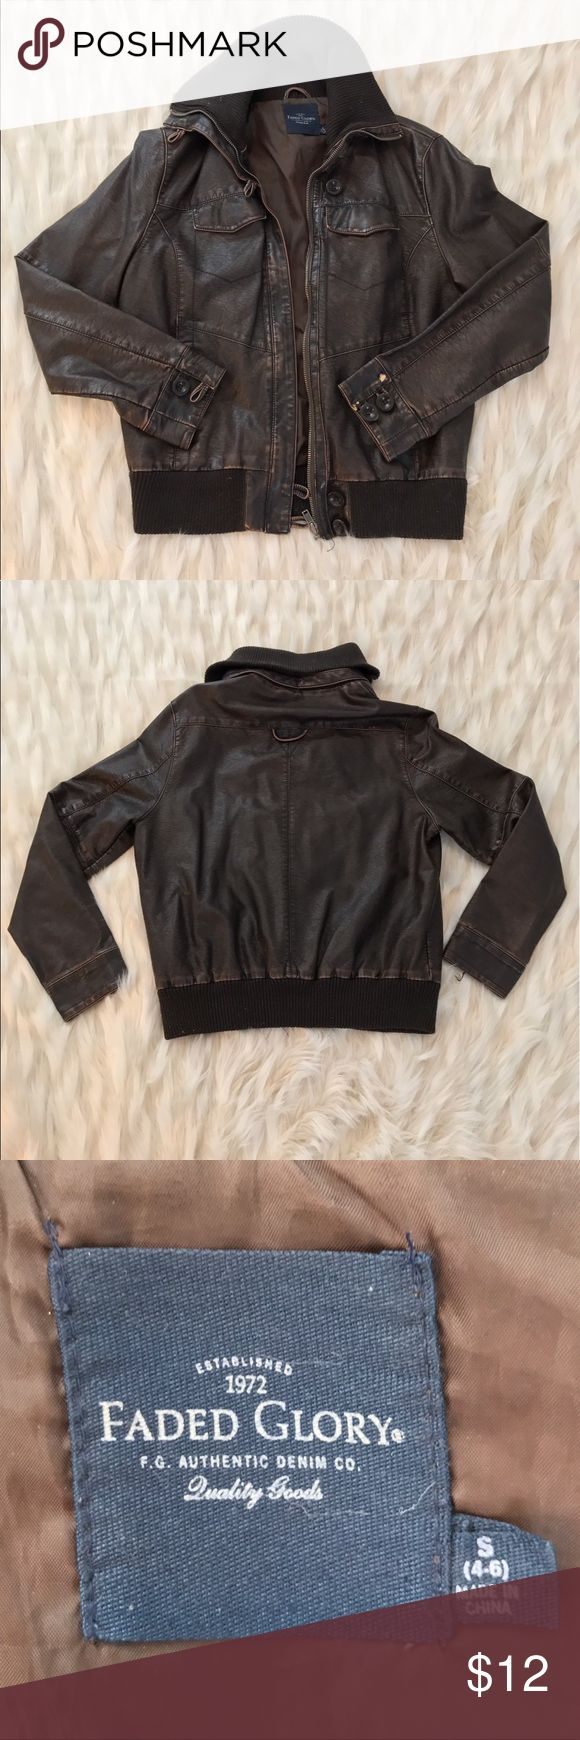 Distressed Brown Leather Bomber Jacket Distressed brown leather bomber jacket in good condition. One button missing on right sleeve. Men's size small. Faded Glory Jackets & Coats Bomber & Varsity